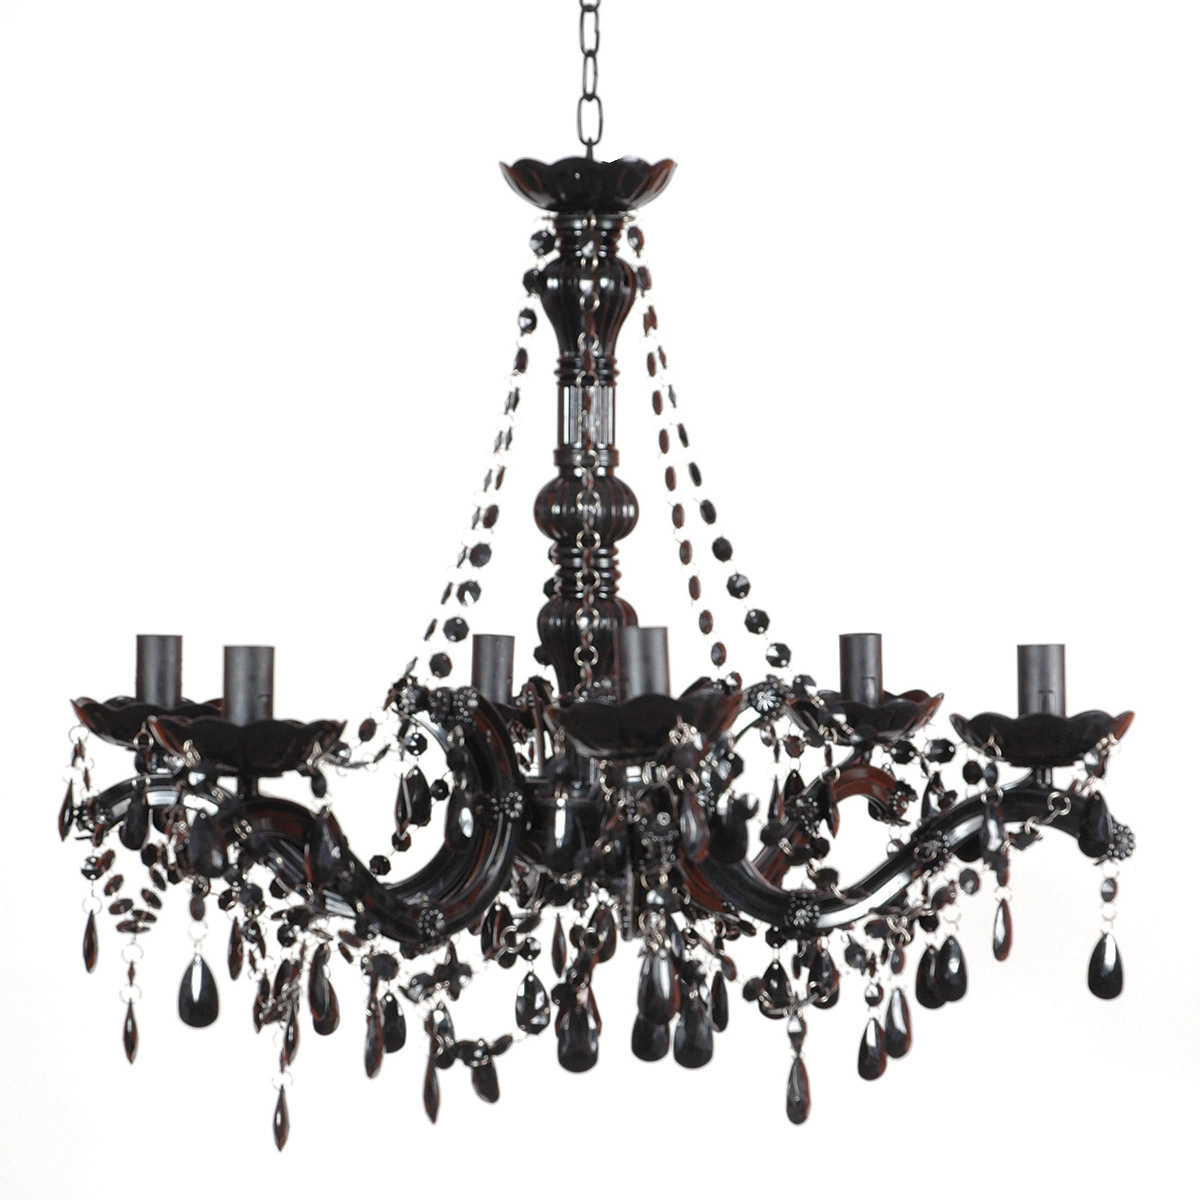 Black Chandelier – a Charming Way to Light Your World